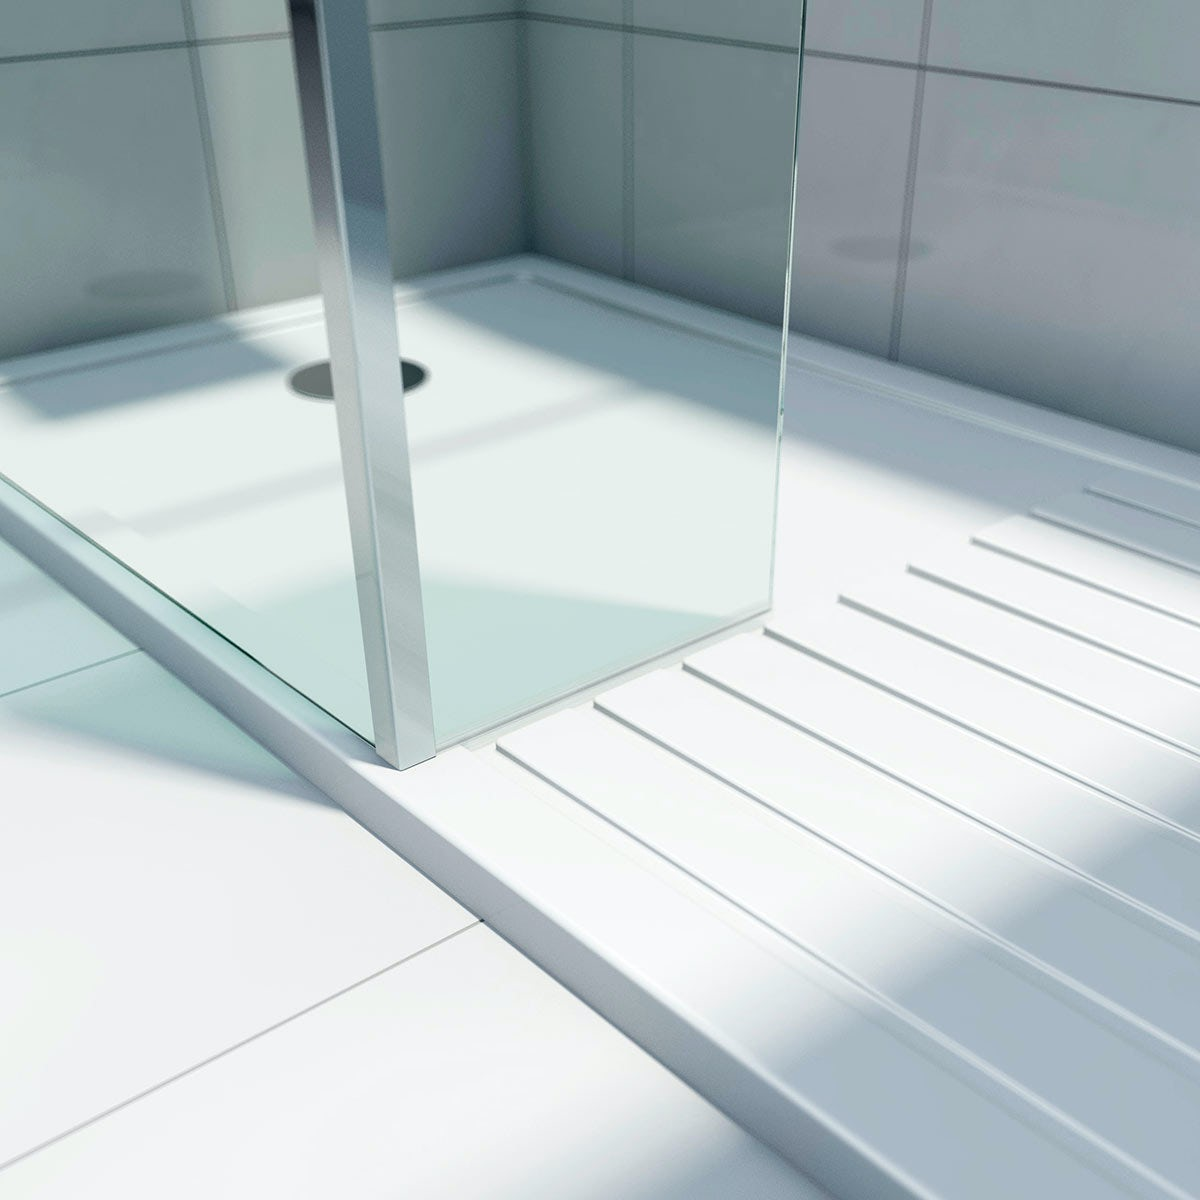 Mode luxury 8mm walk in shower enclosure pack with tray for Walk in shower tray